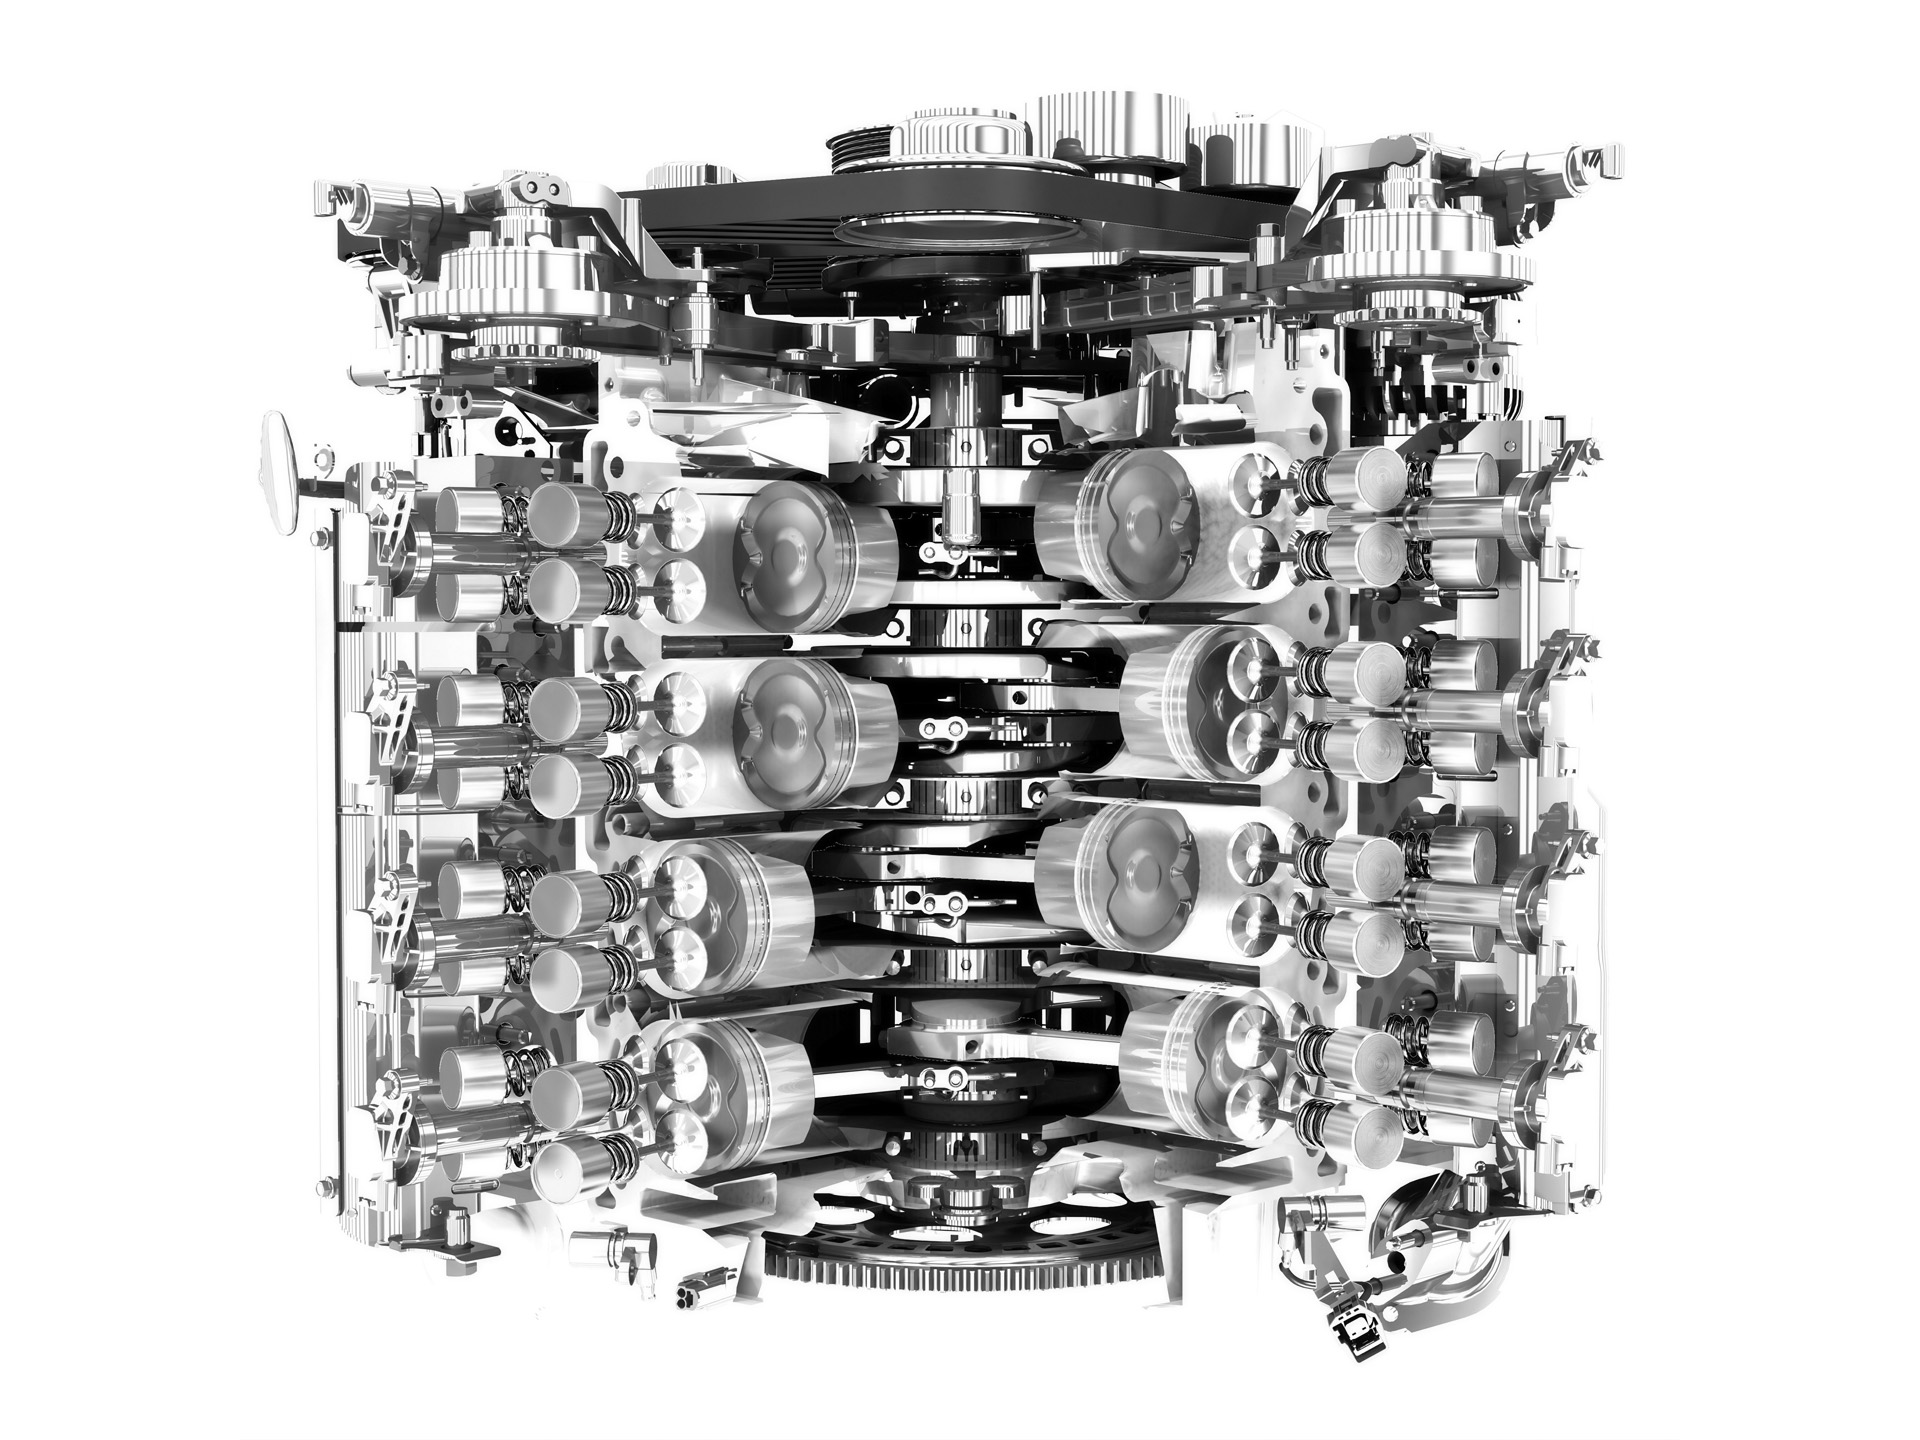 Sample P1246 Engine